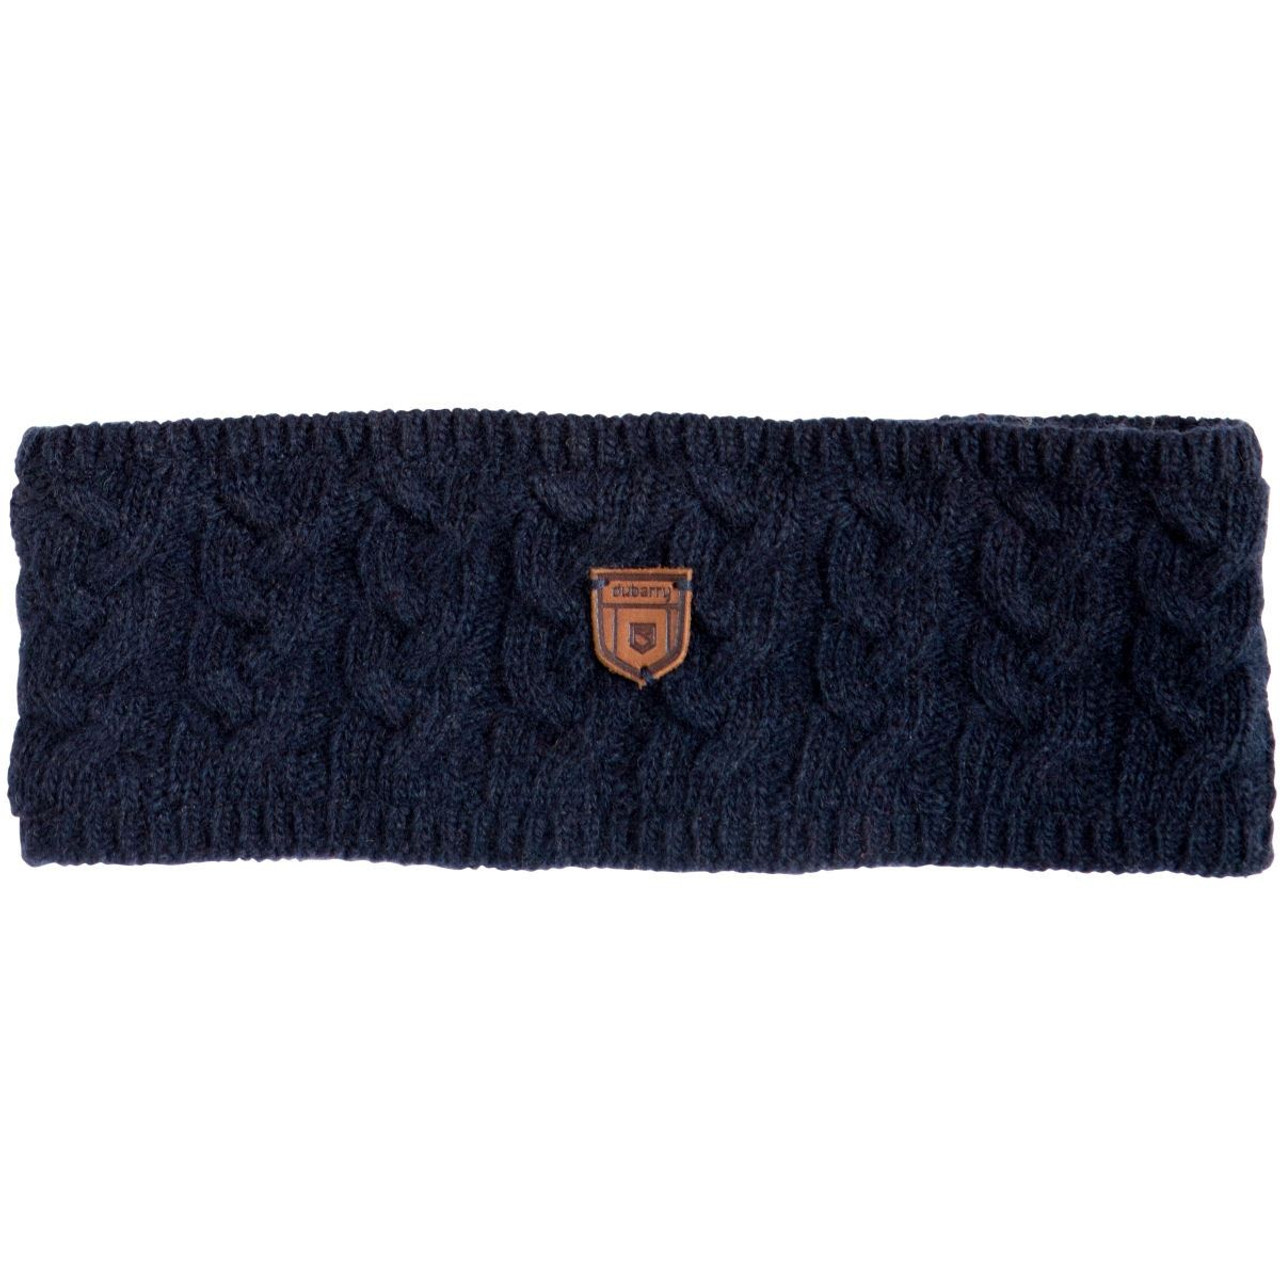 Dubarry Farmleigh Headband in Navy